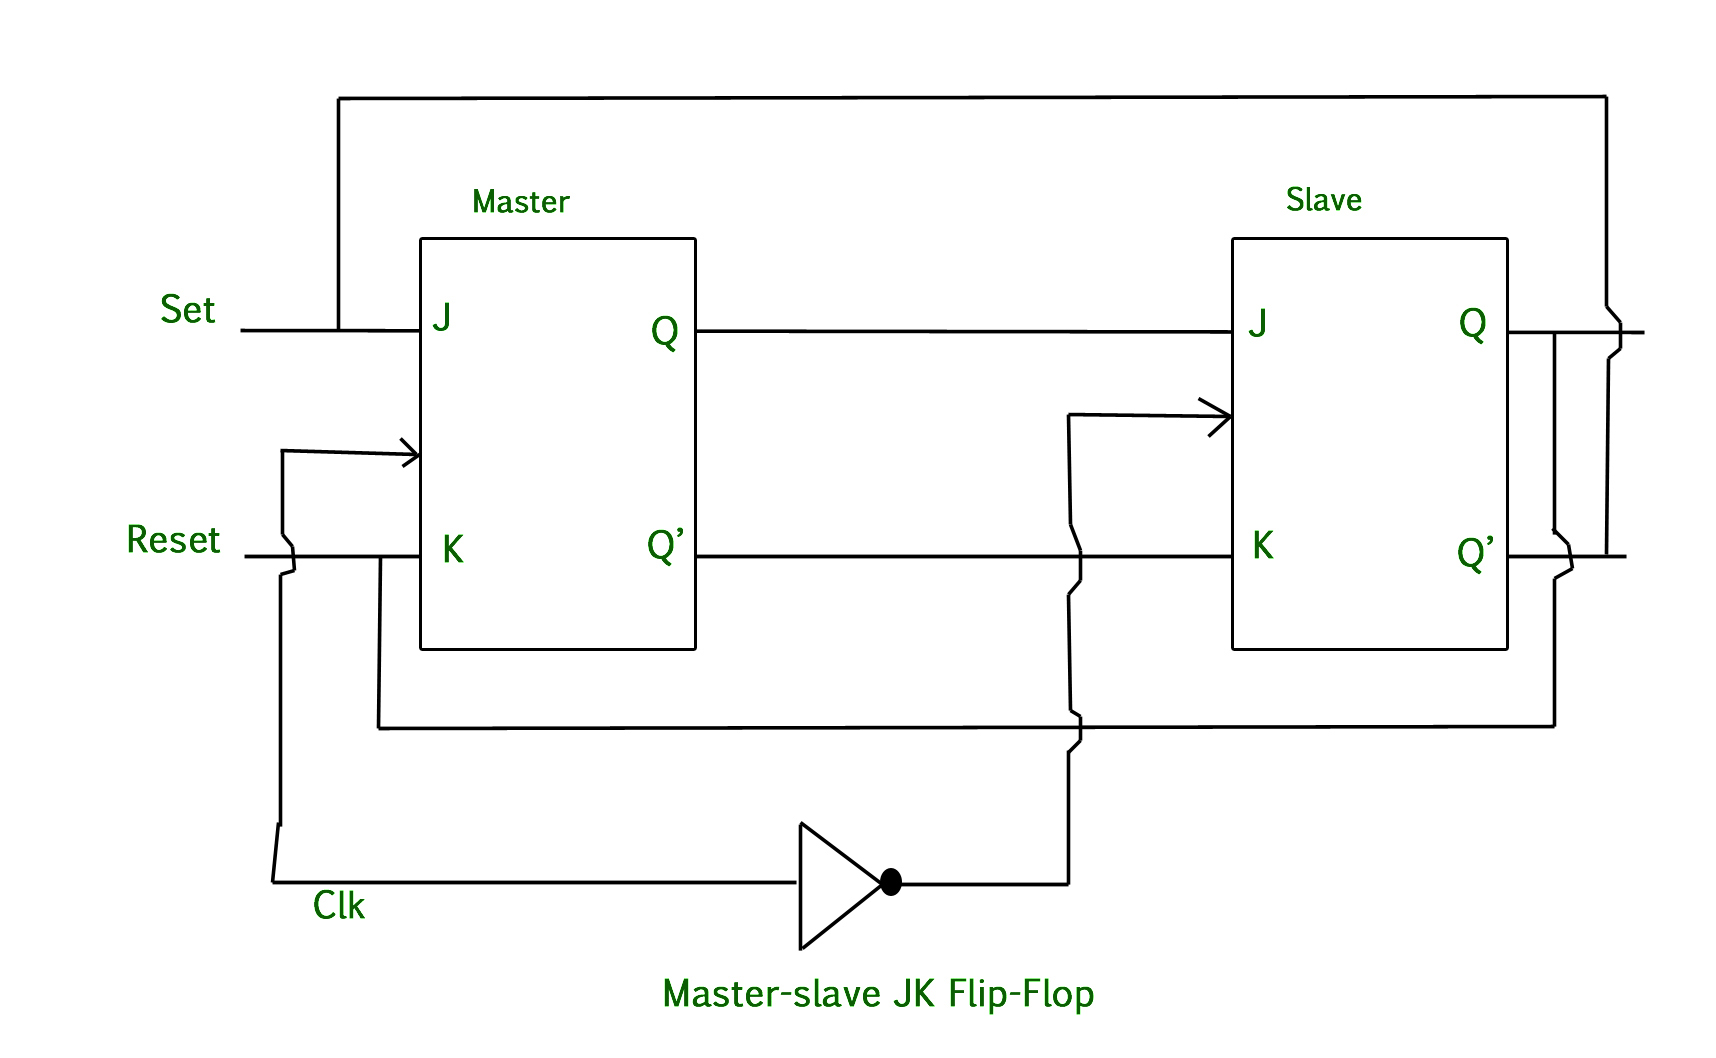 hight resolution of in other words if cp 0 for a master flip flop then cp 1 for a slave flip flop and if cp 1 for master flip flop then it becomes 0 for slave flip flop